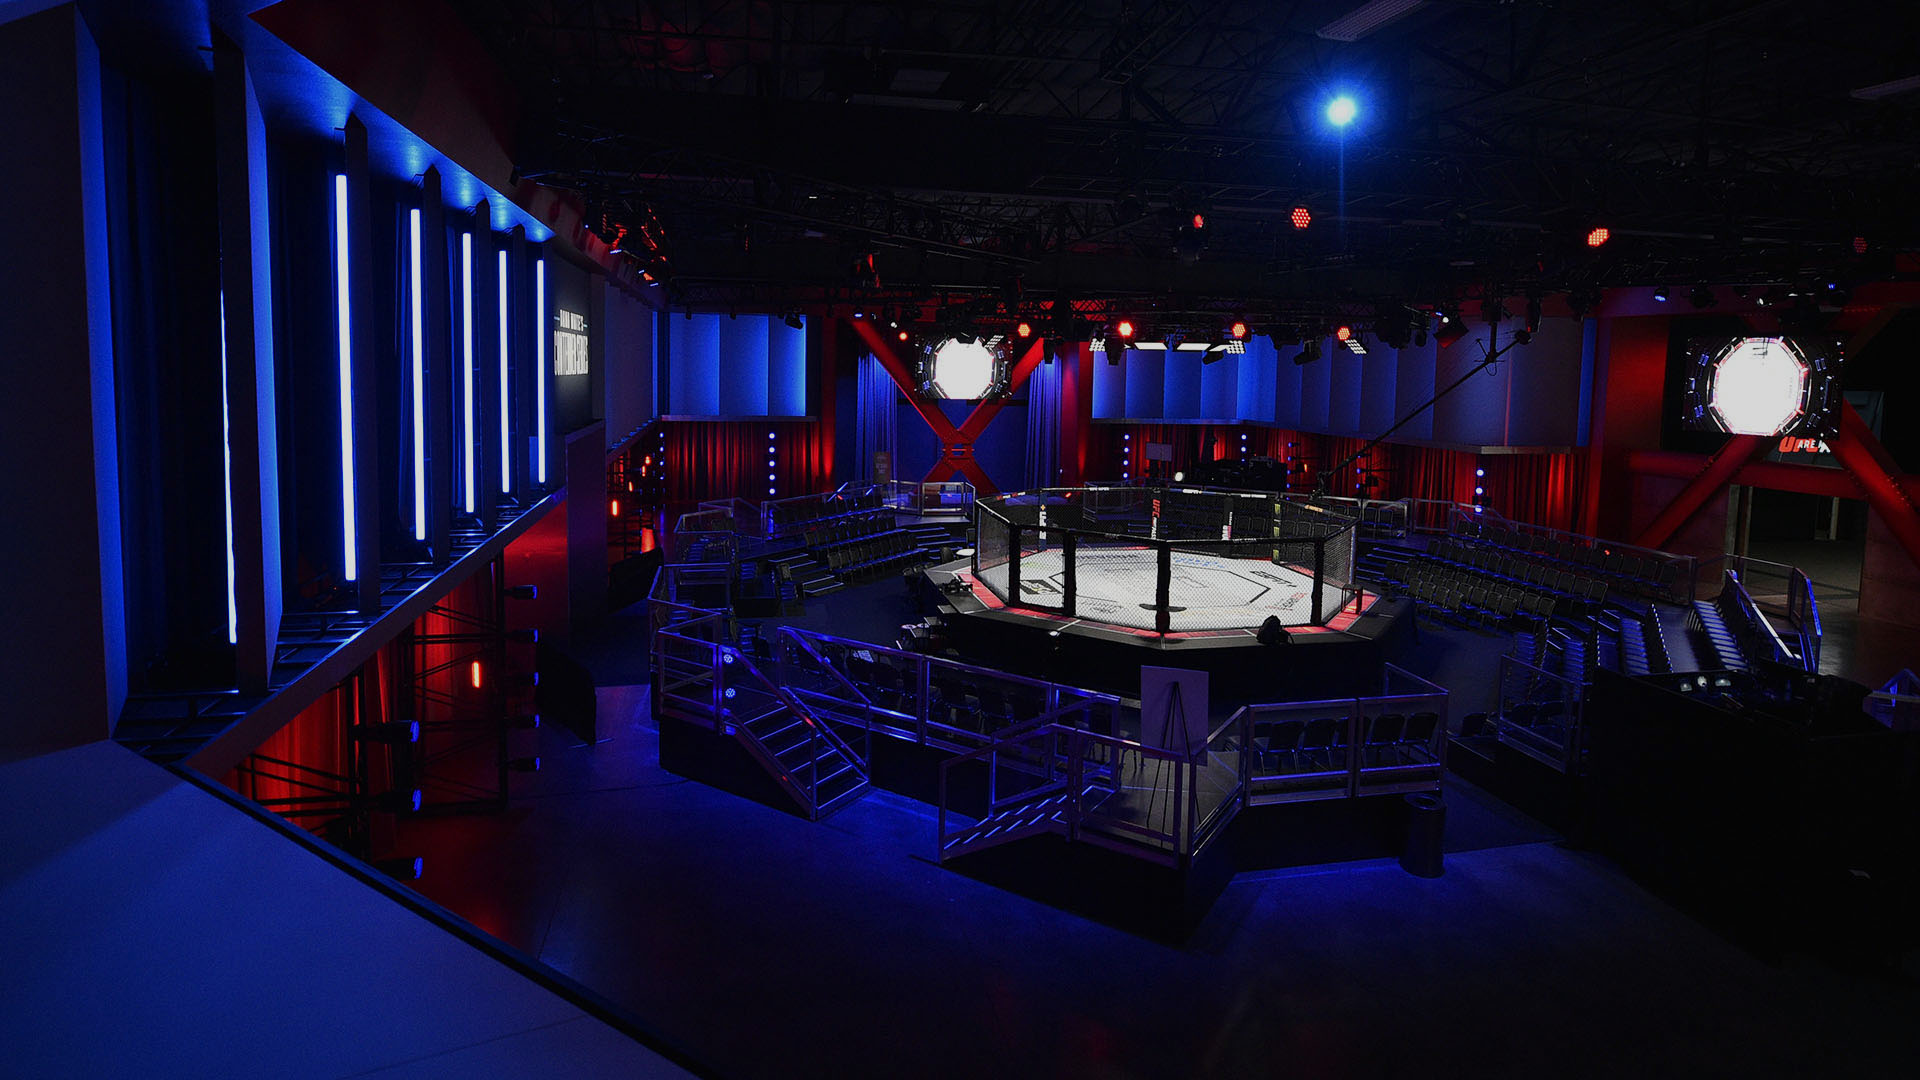 A general view of the Octagon during Dana White's Contender Series season three week nine at the UFC Apex on August 20, 2019 in Las Vegas, Nevada. (Photo by Chris Unger/DWCS LLC/Zuffa LLC)